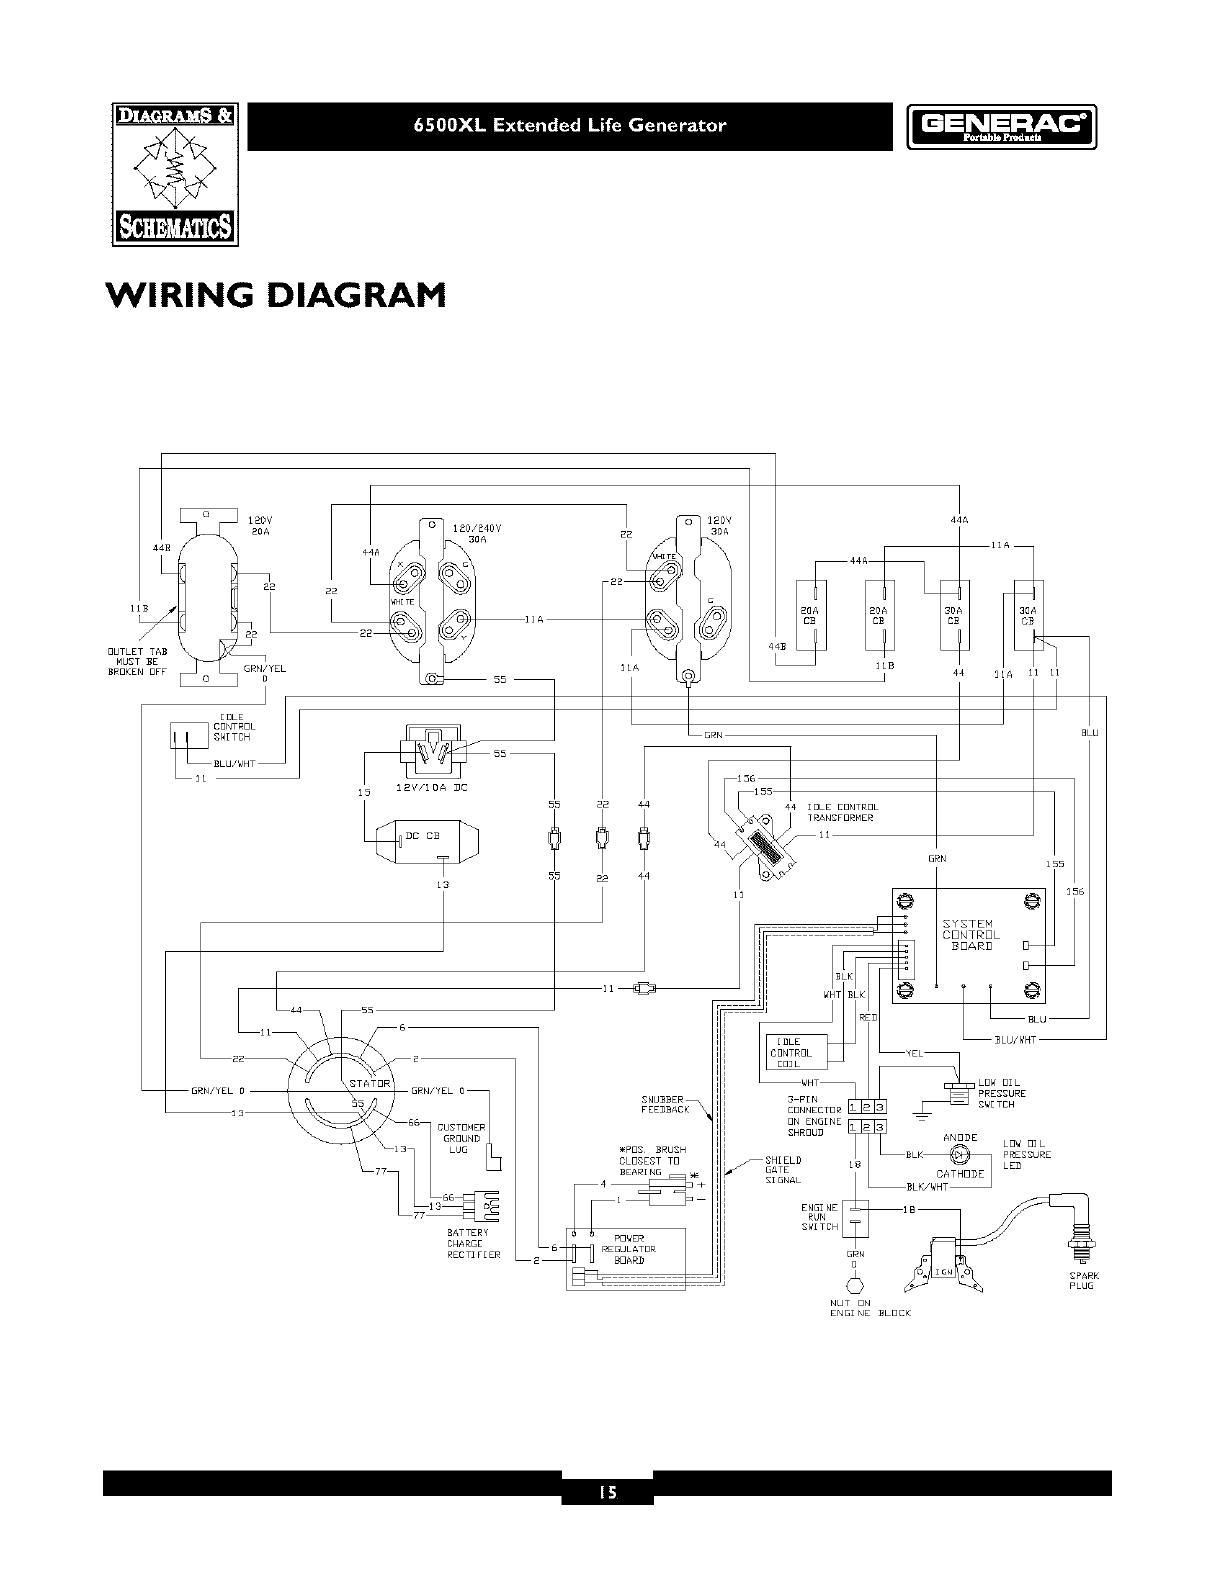 abacbfe4 09c9 46f3 b904 b7a0ca98baaa bgf page 15 of generac portable generator 6500xl user guide abac air compressor wiring diagram at n-0.co